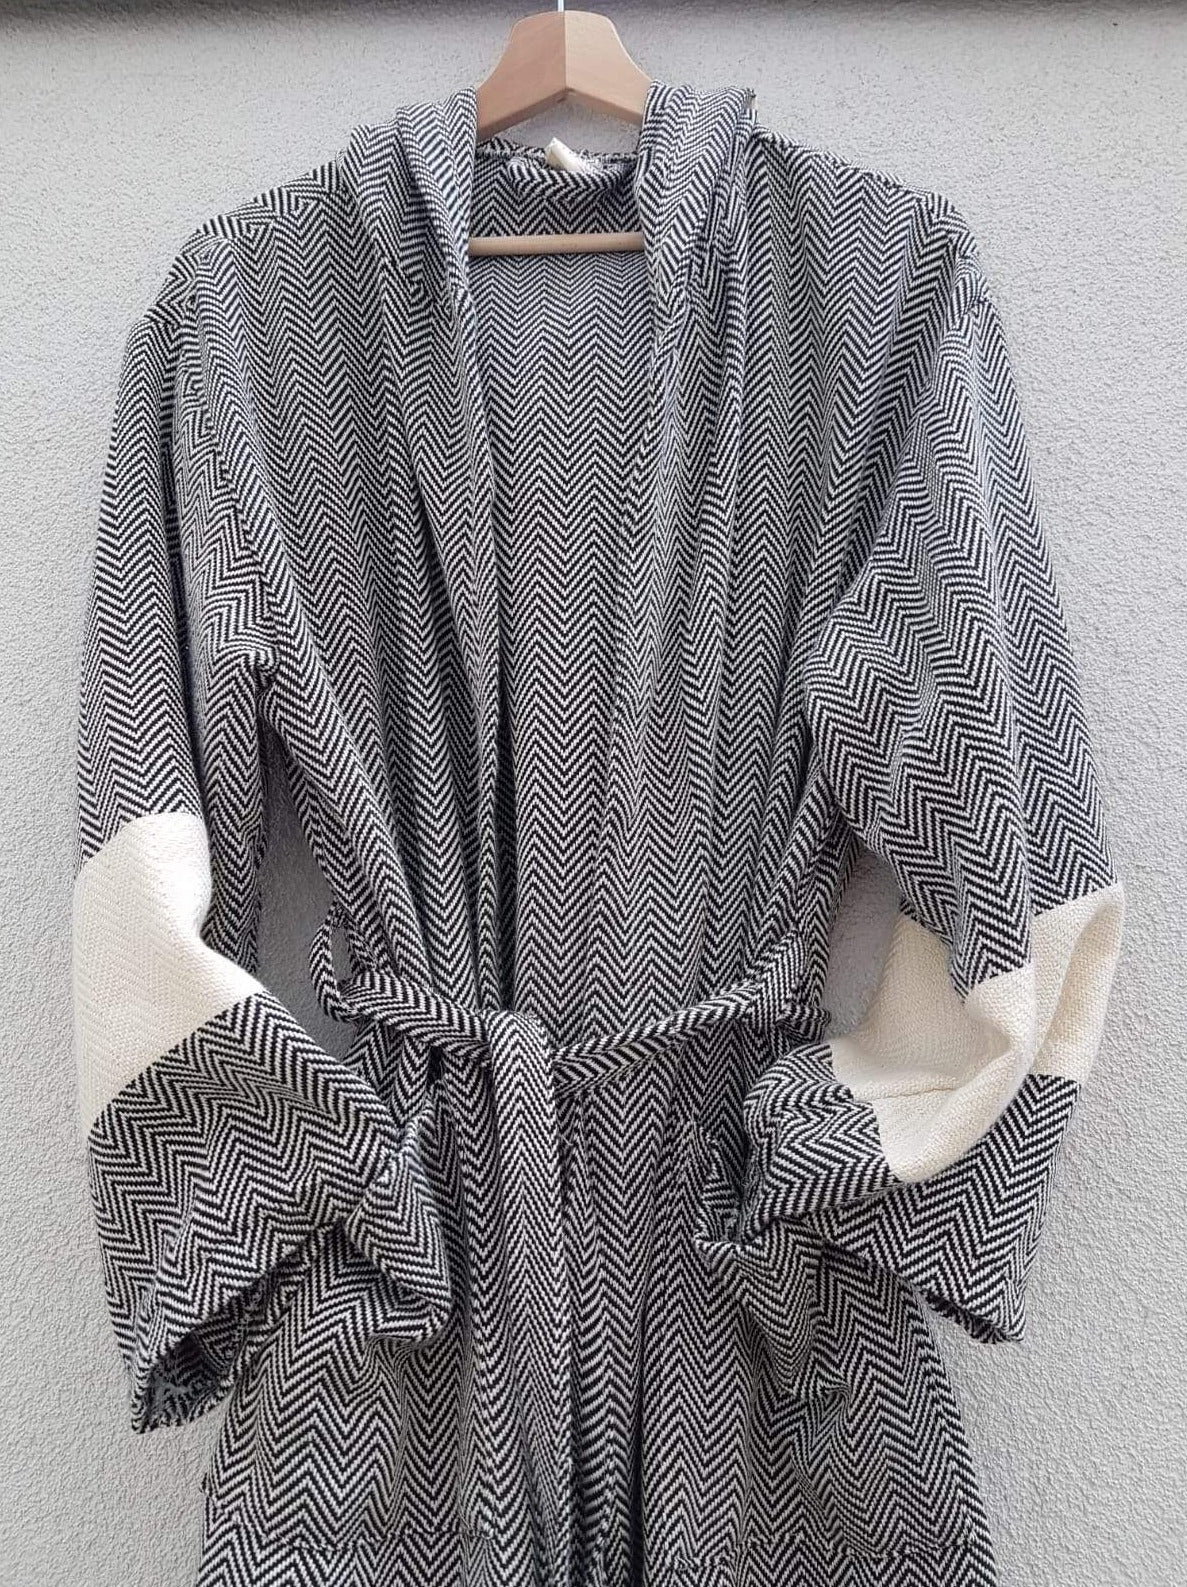 New Design Chevron - 100% Cotton Bathrobes